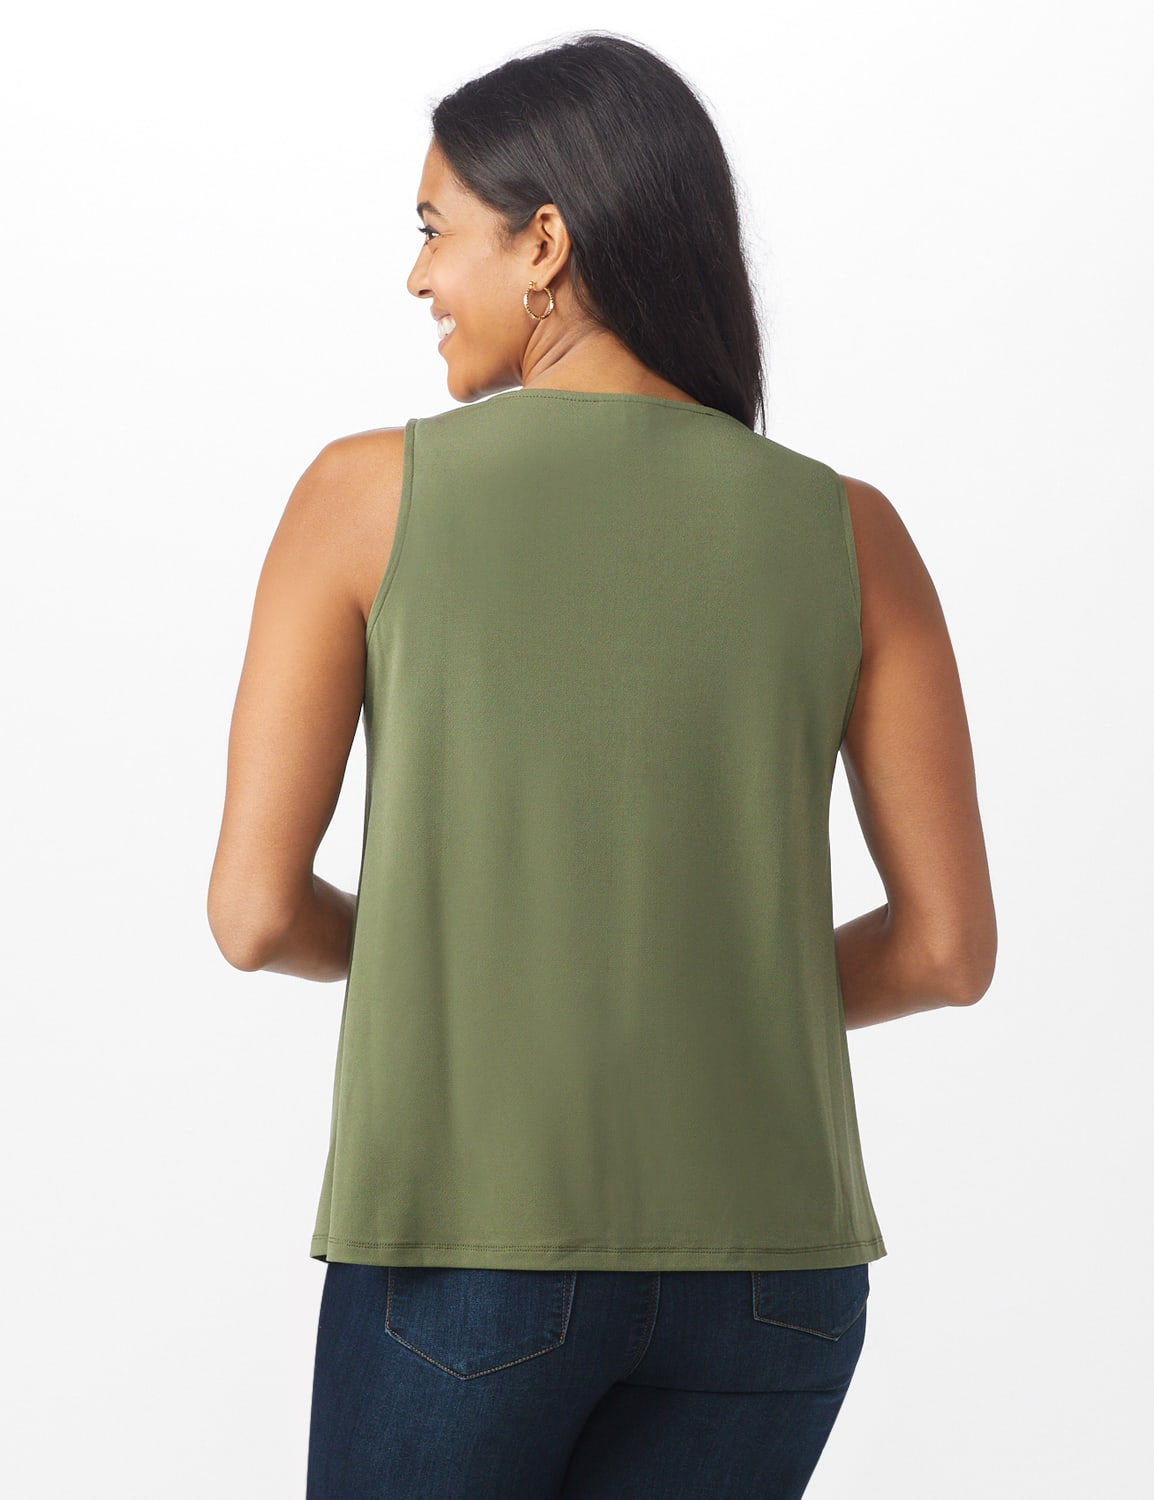 Roz & Ali Crochet Trim Crepe Hi/Lo Knit Top - Olive - Back